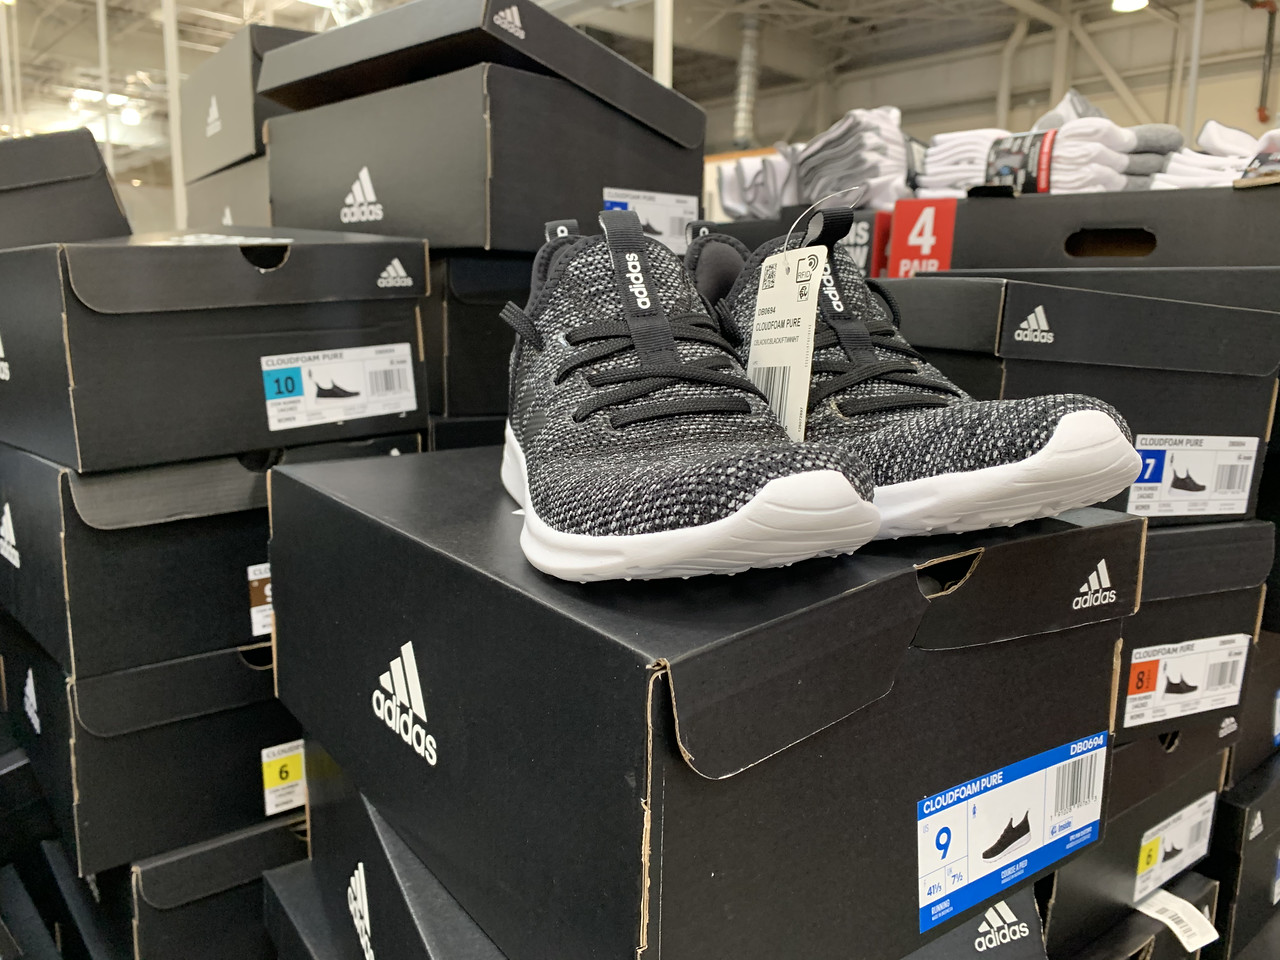 Adidas Women's Cloudfoam Shoes Only $29.99 at Costco